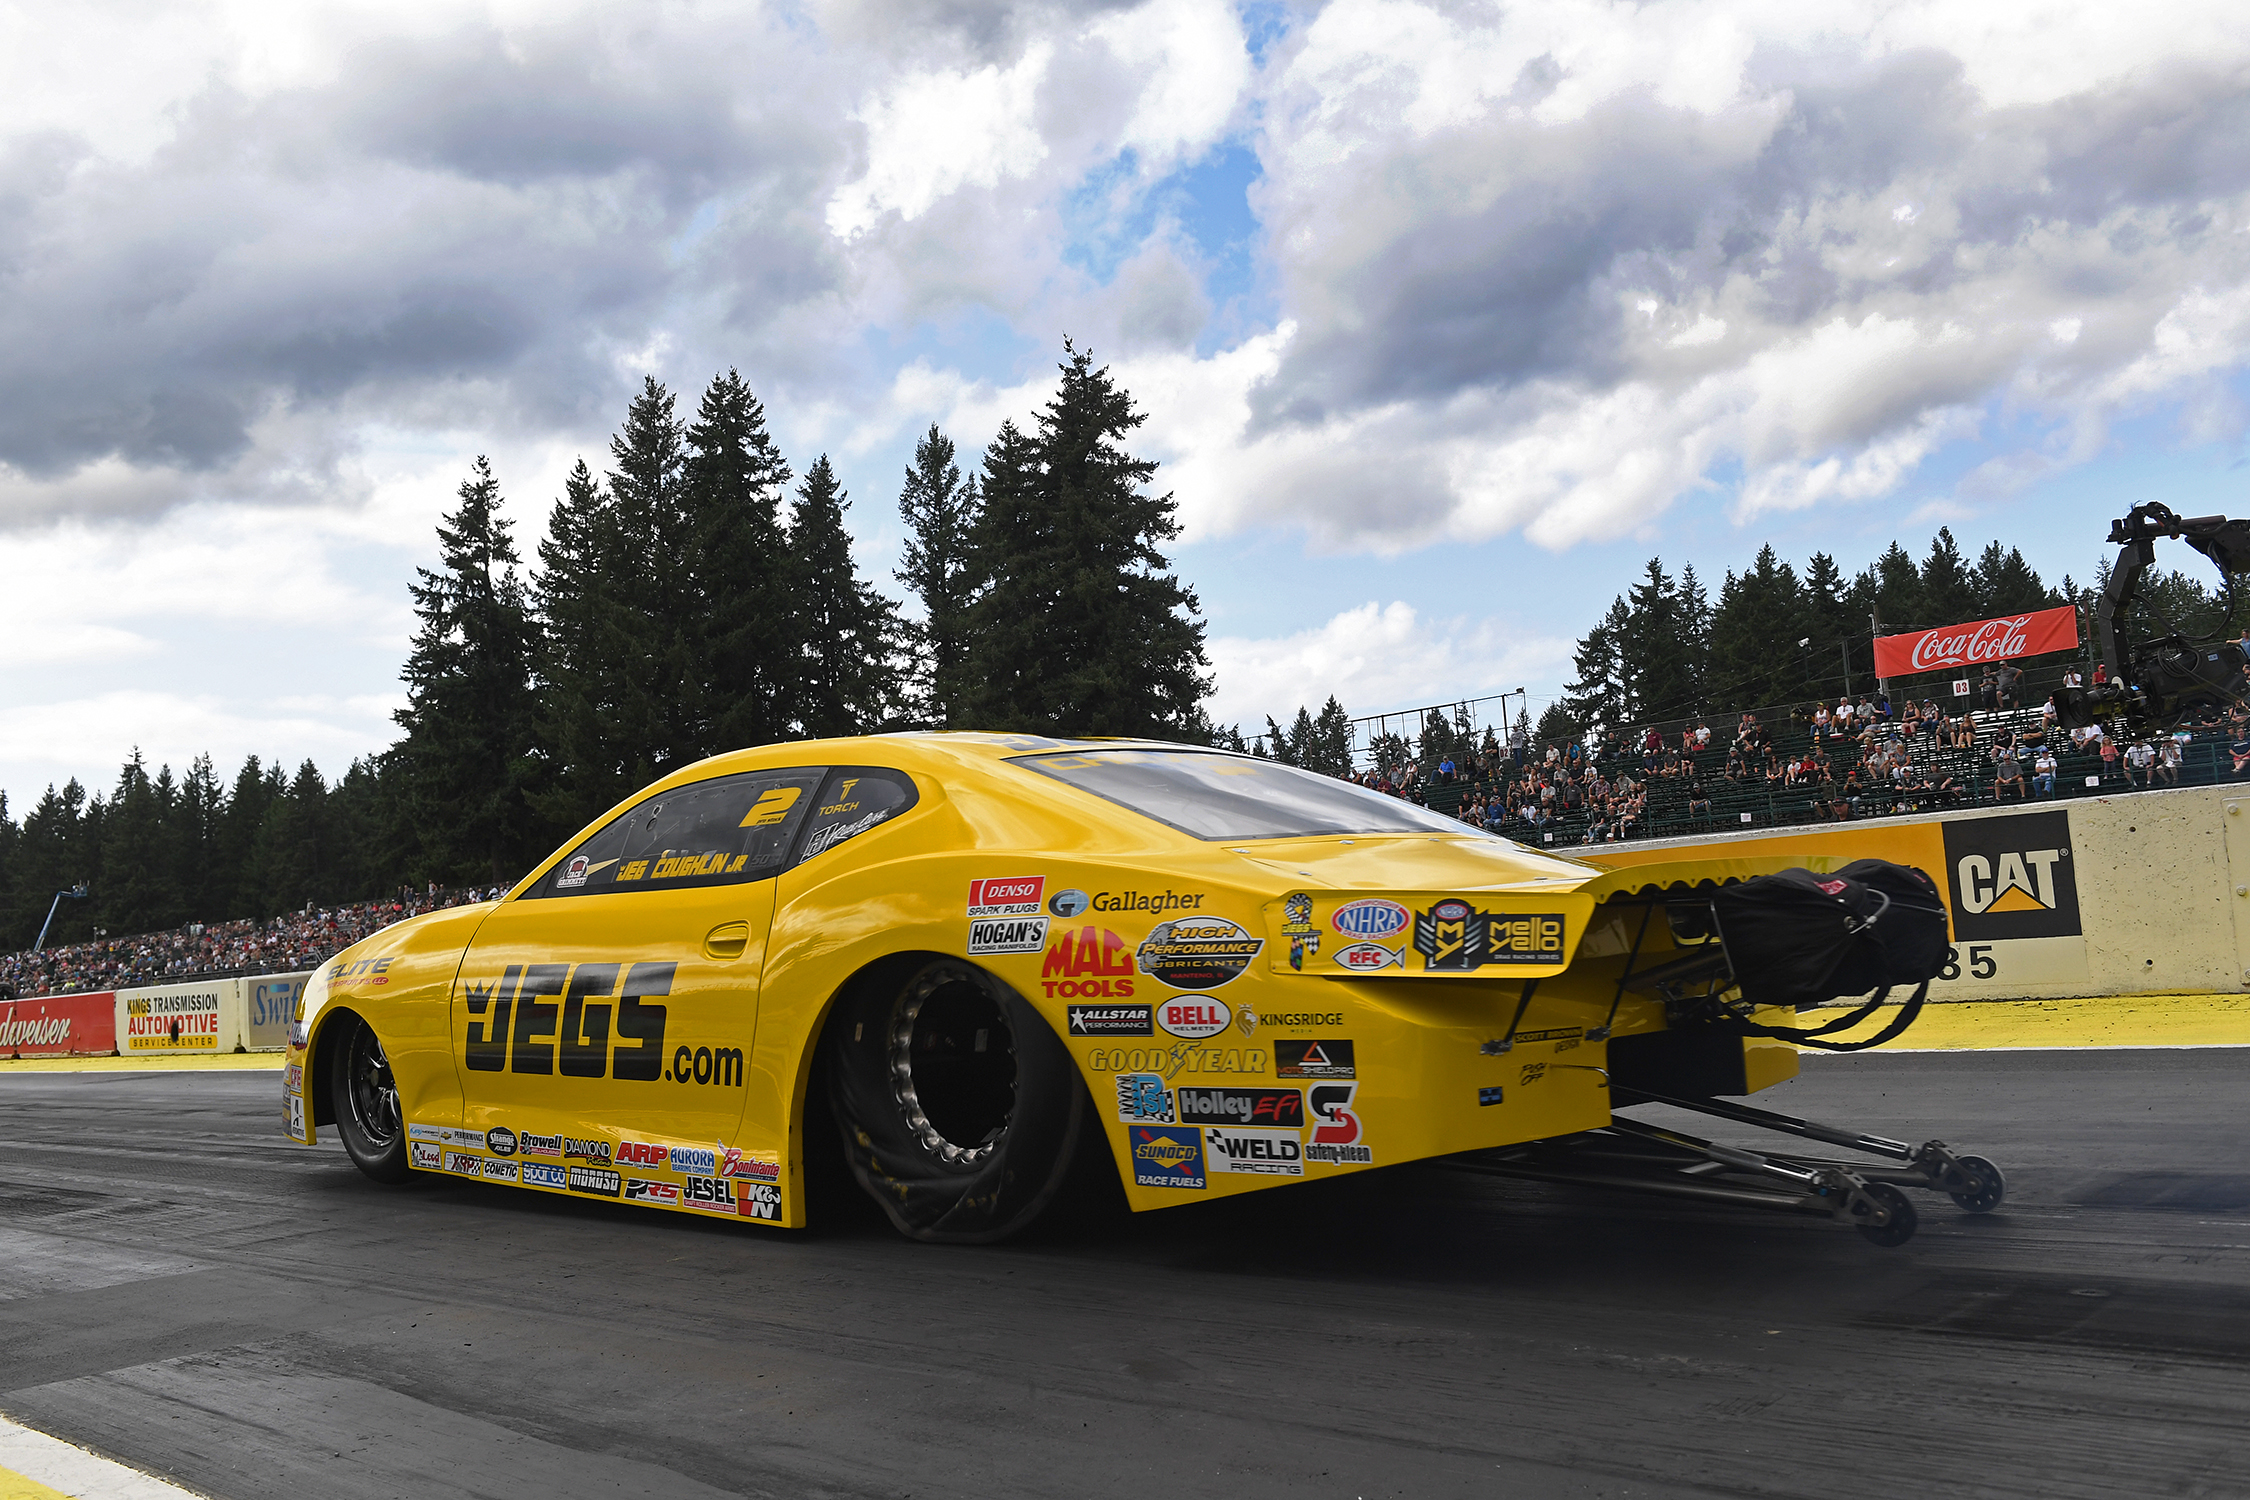 Pro Stock driver Jeg Coughlin Jr. racing on Friday at the 2019 Magic Dry Organic Absorbent NHRA Northwest Nationals